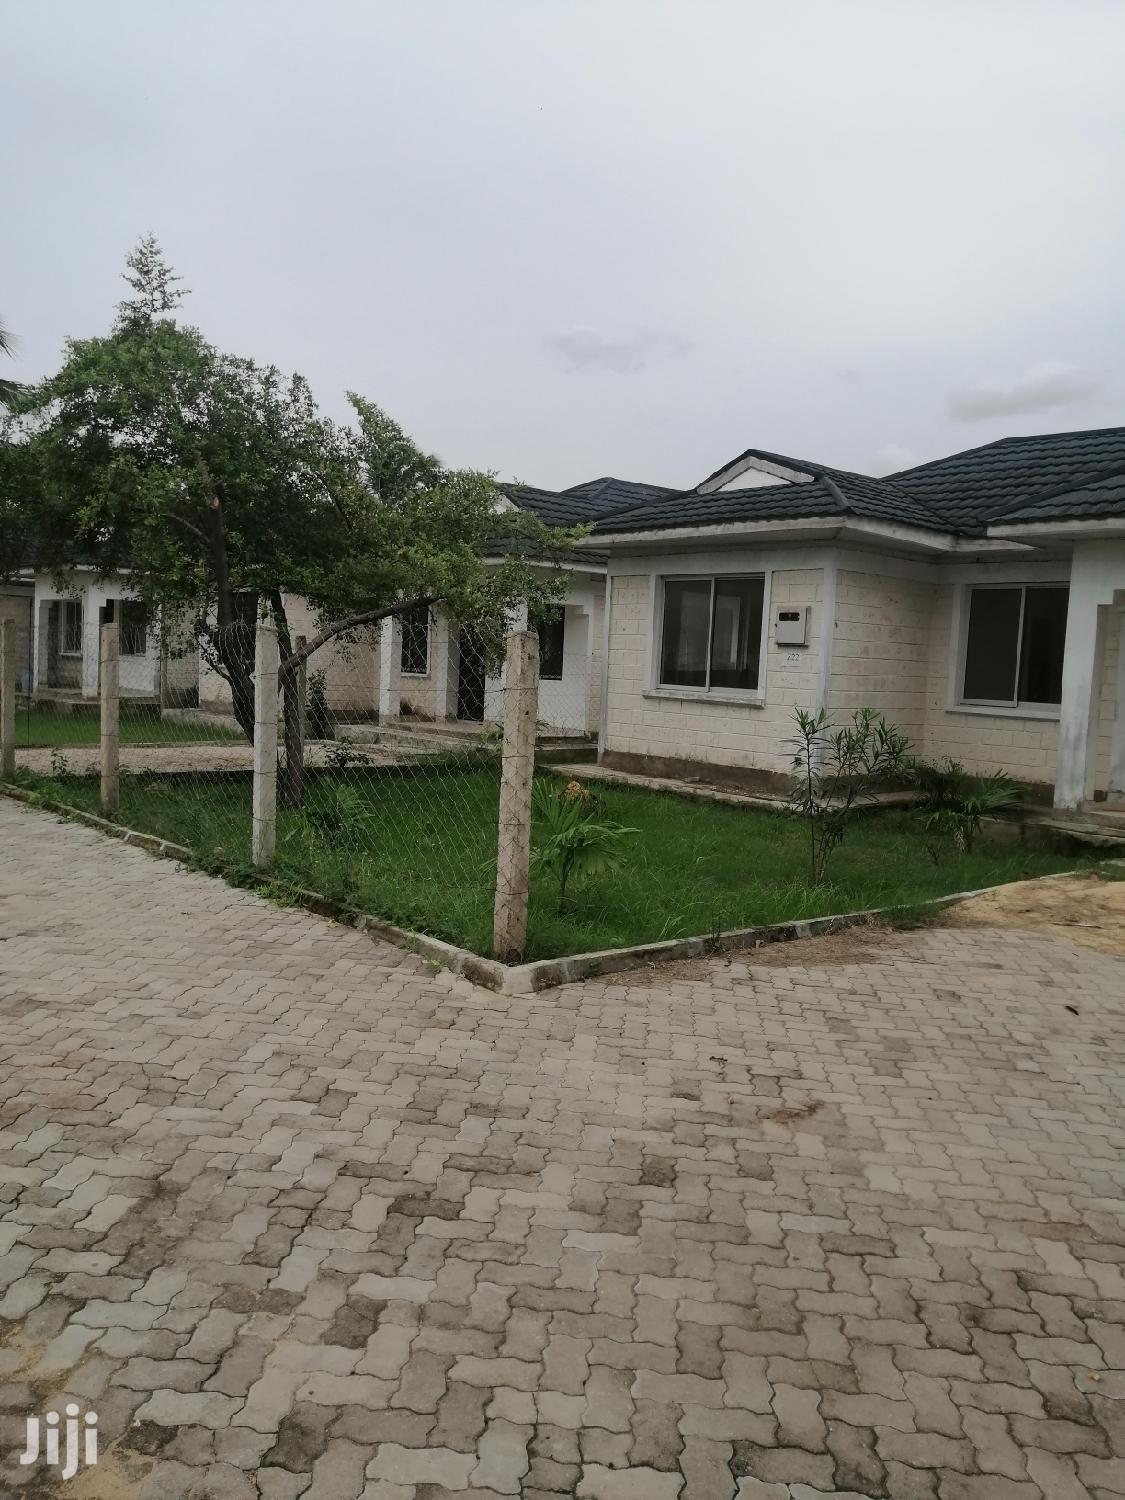 3bedr's Bungalow To Let Located At Mombasa Utange Area